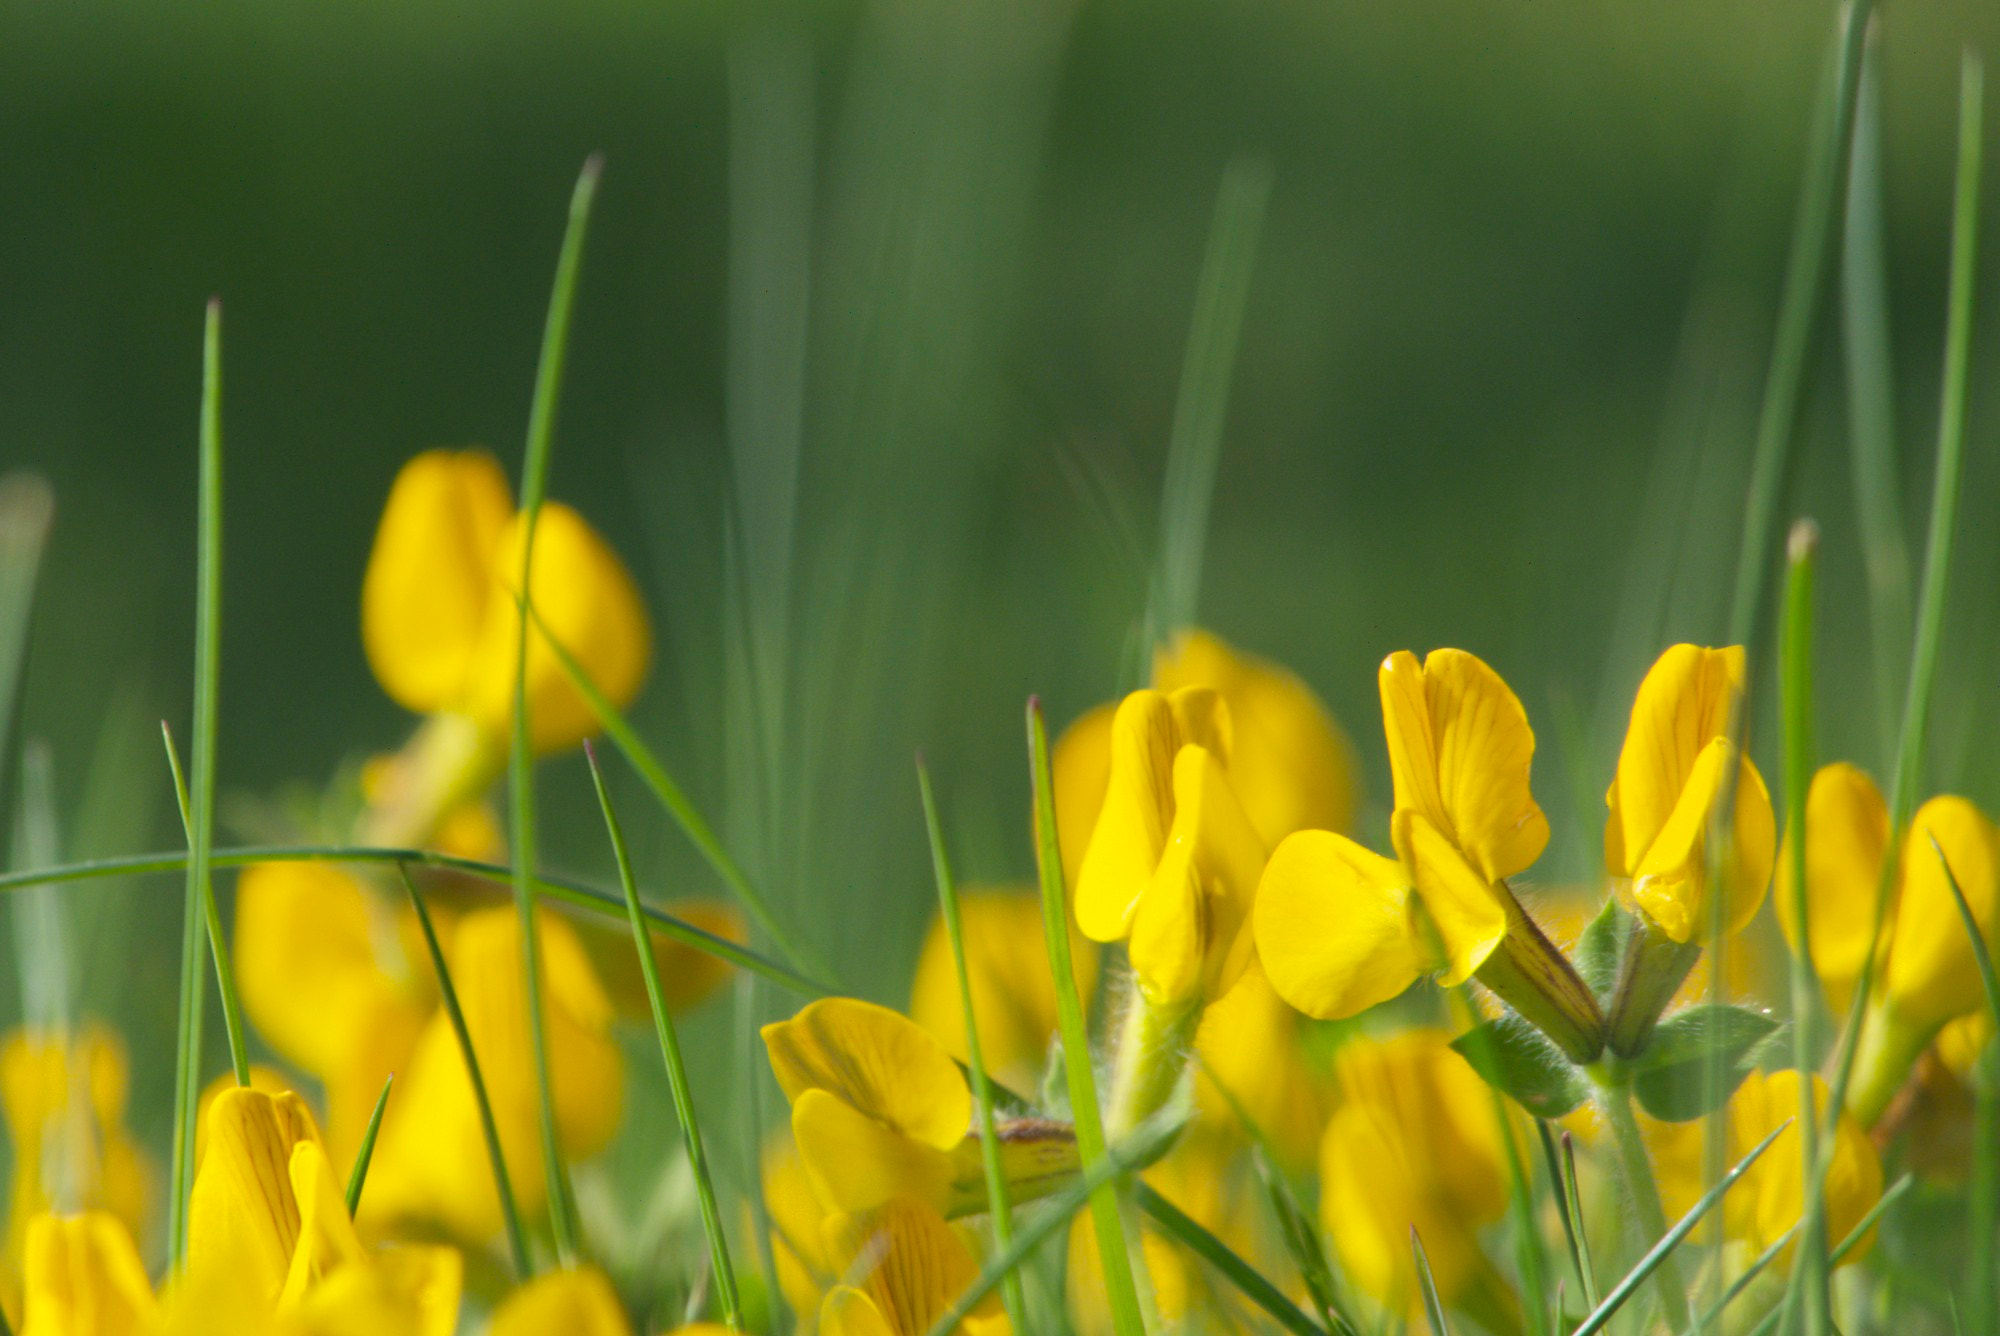 Photograph Yellow&Green by Maurizio Natali on 500px